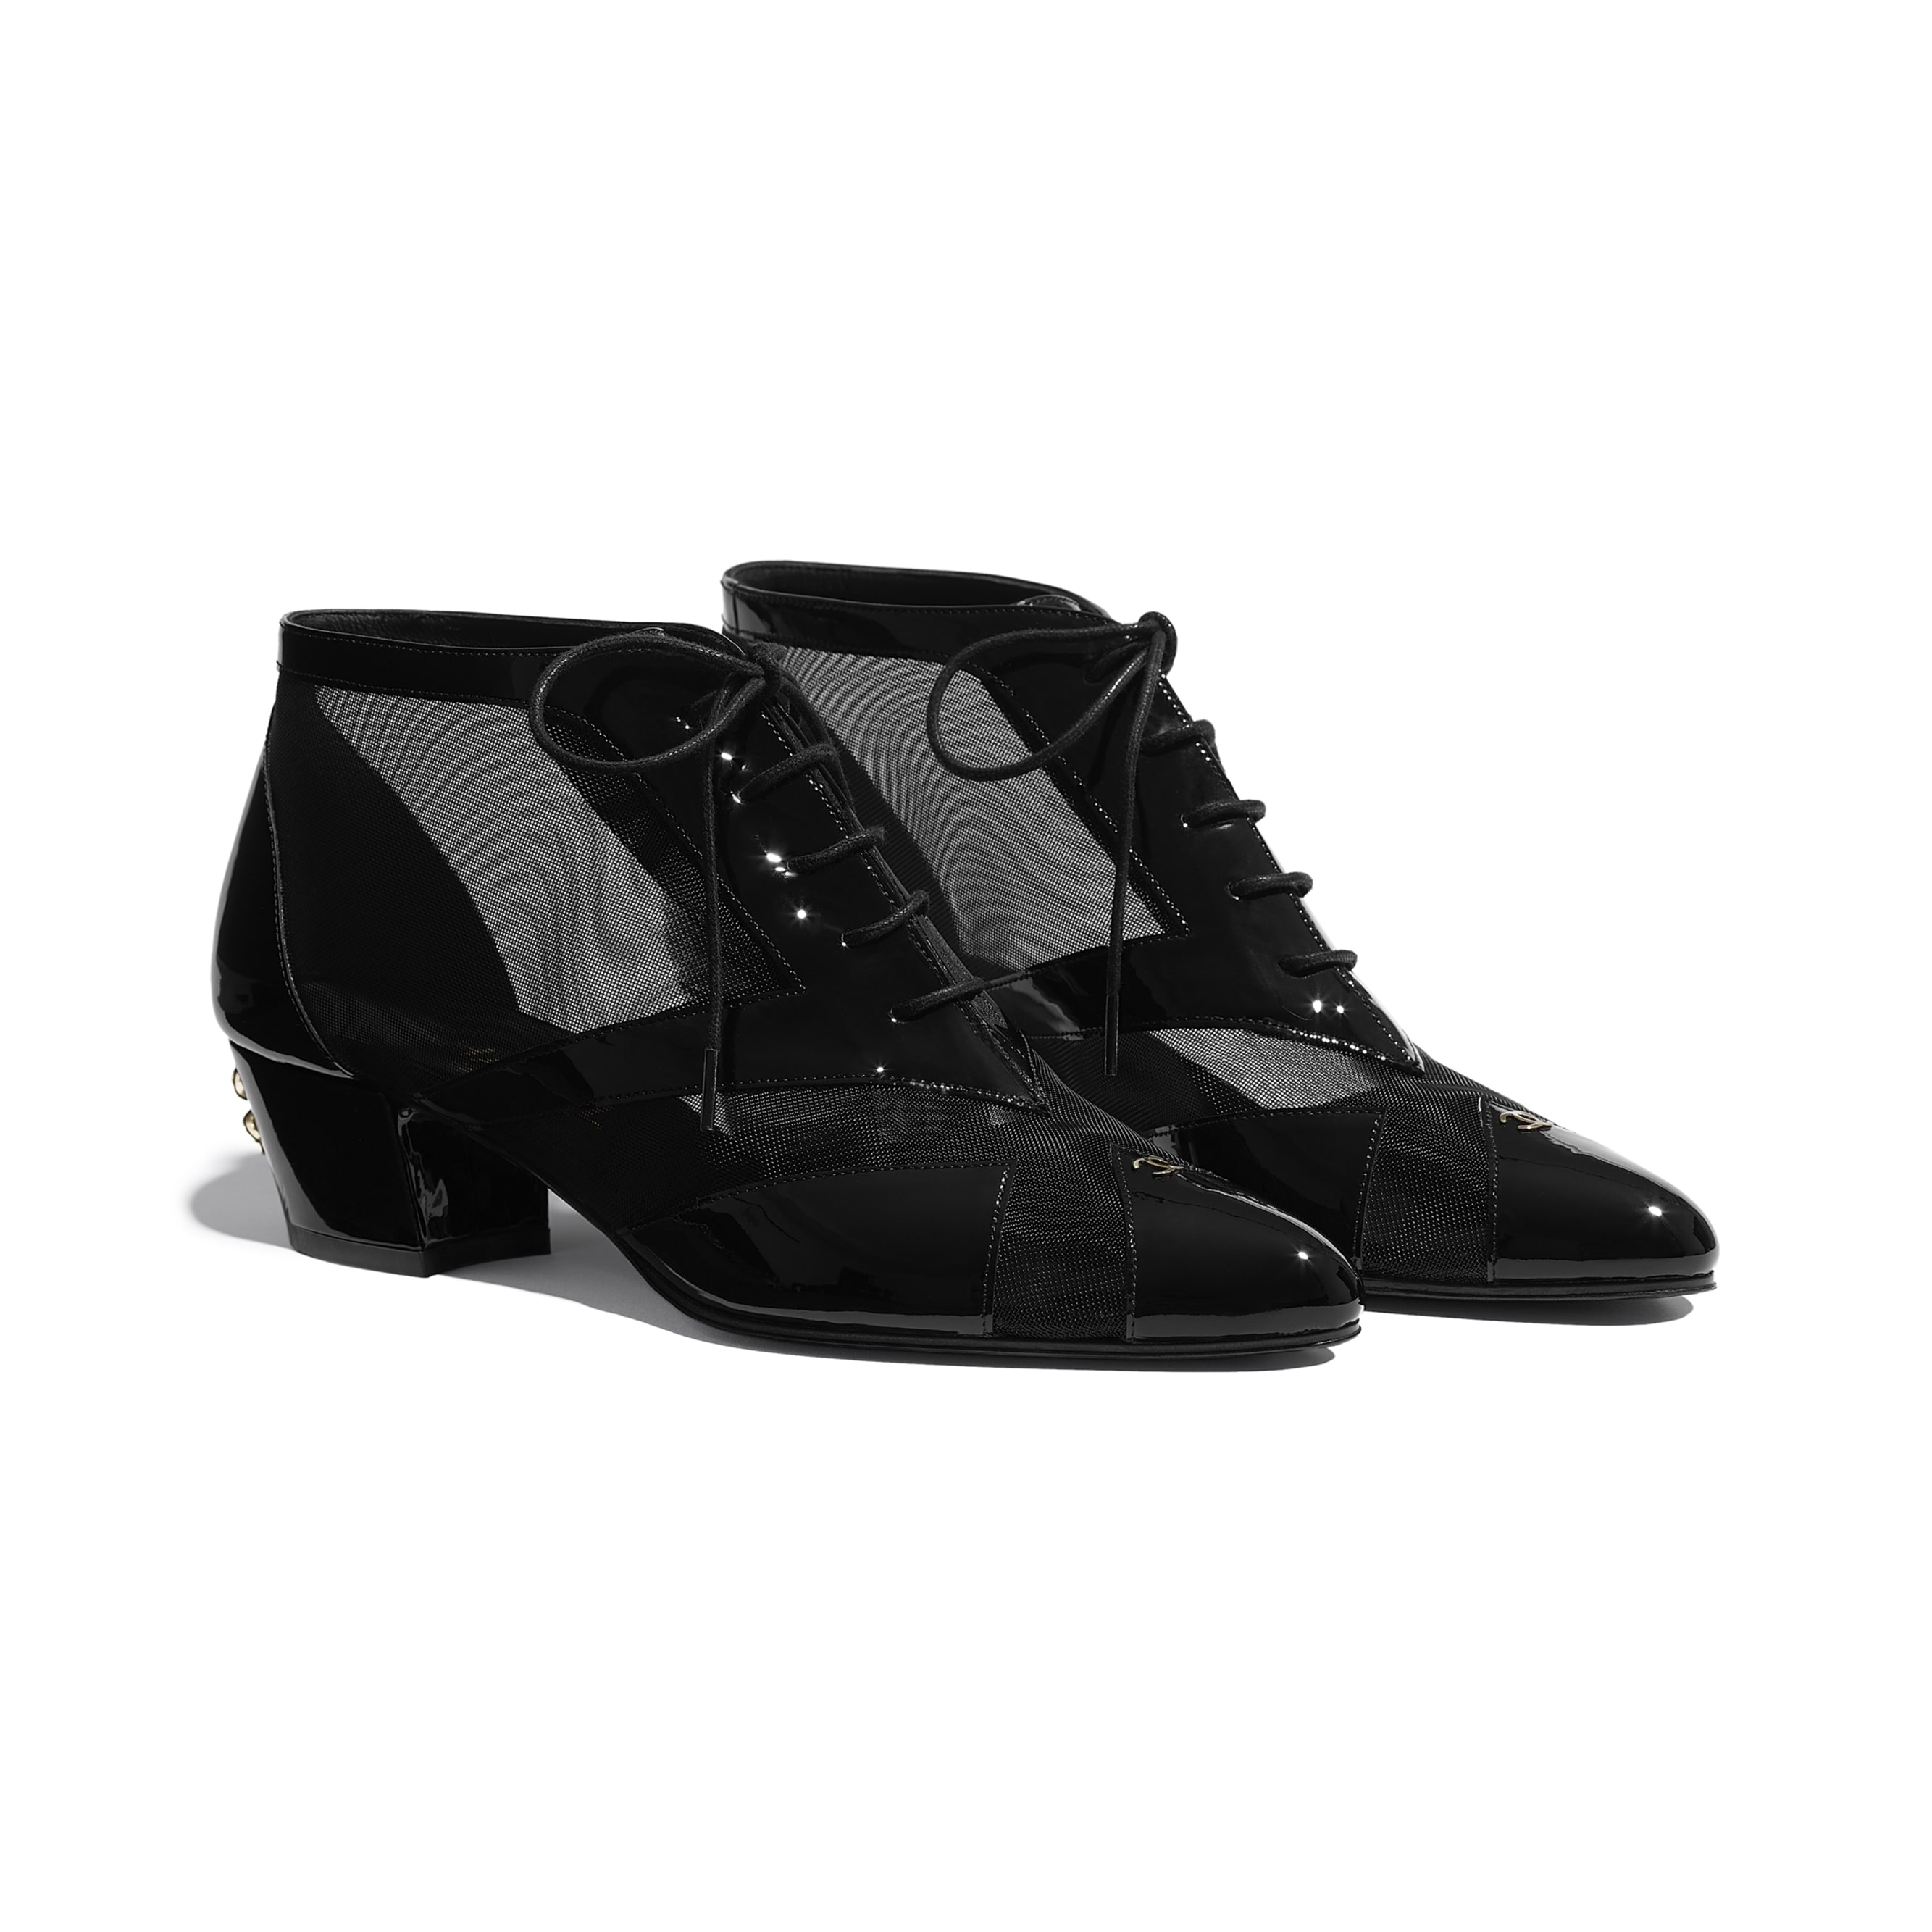 Lace Up - Black - Mesh & Patent Calfskin - Alternative view - see standard sized version